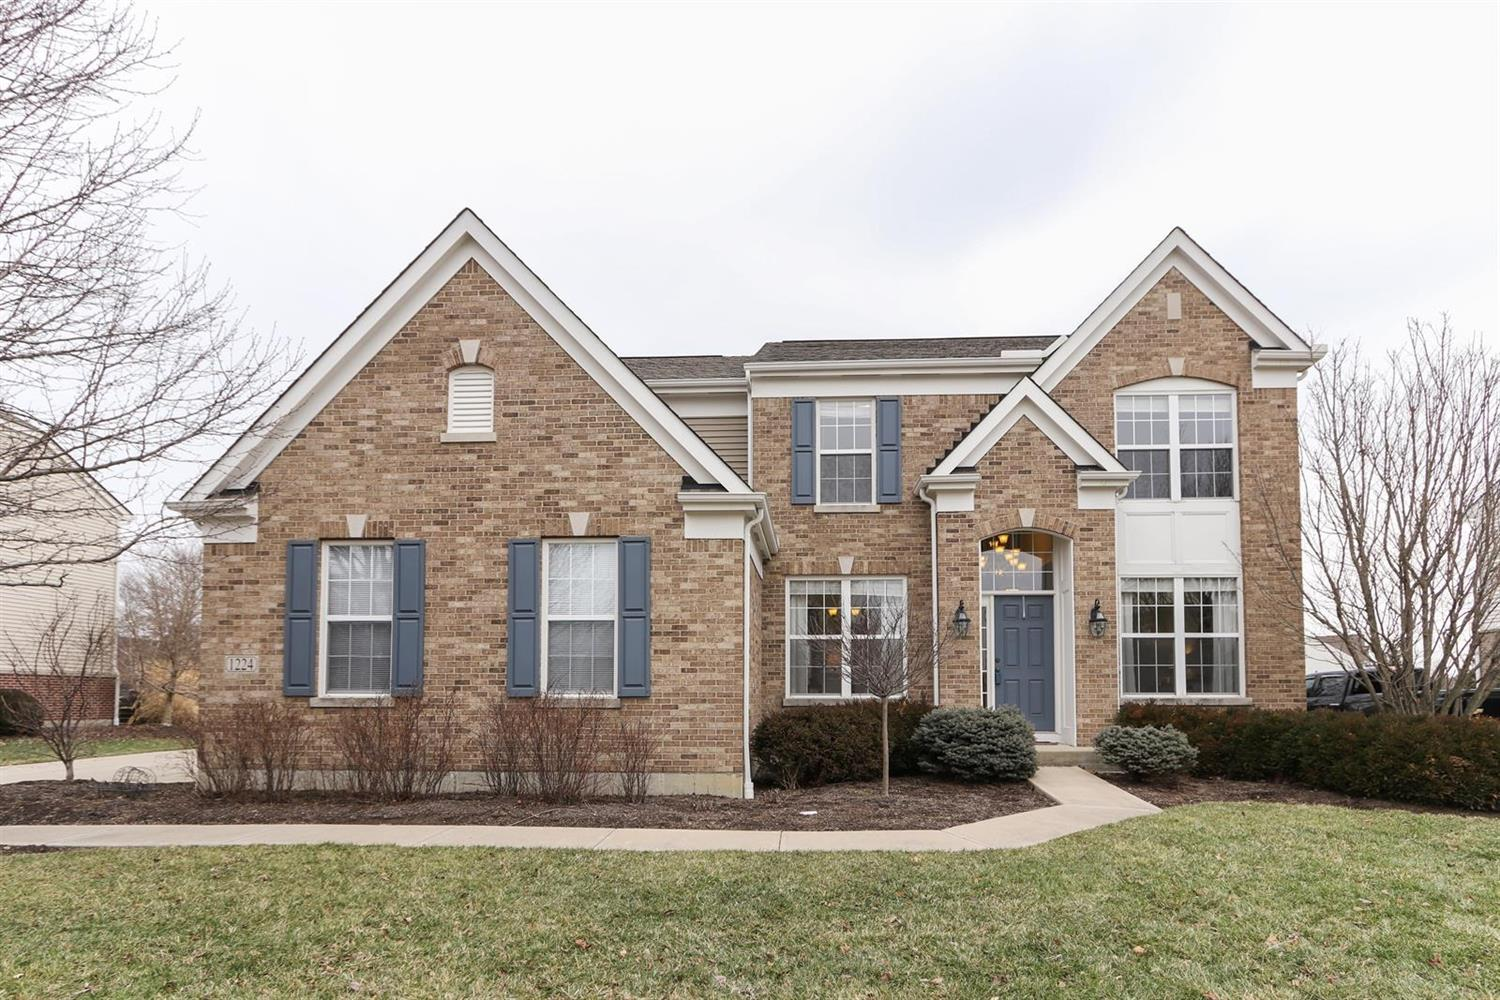 Property for sale at 1224 Traditions Turn, Batavia Twp,  OH 45103